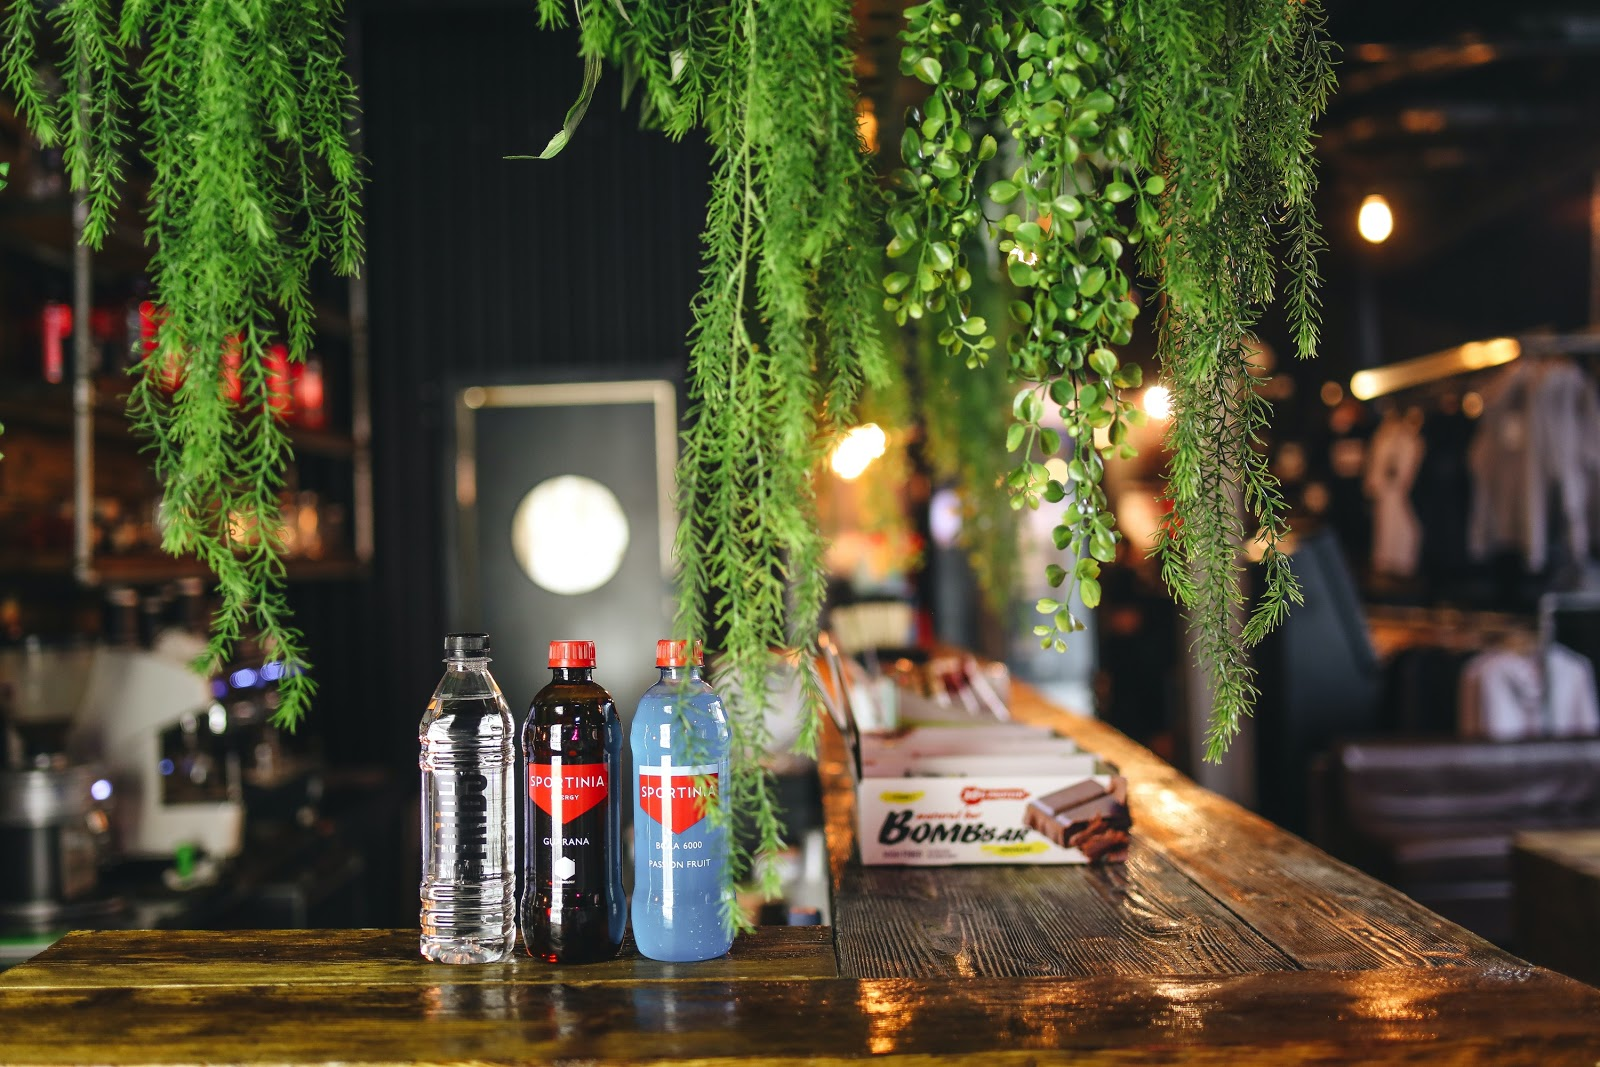 An attractive bar with overhanging green foliage featuring an array of bottled products.